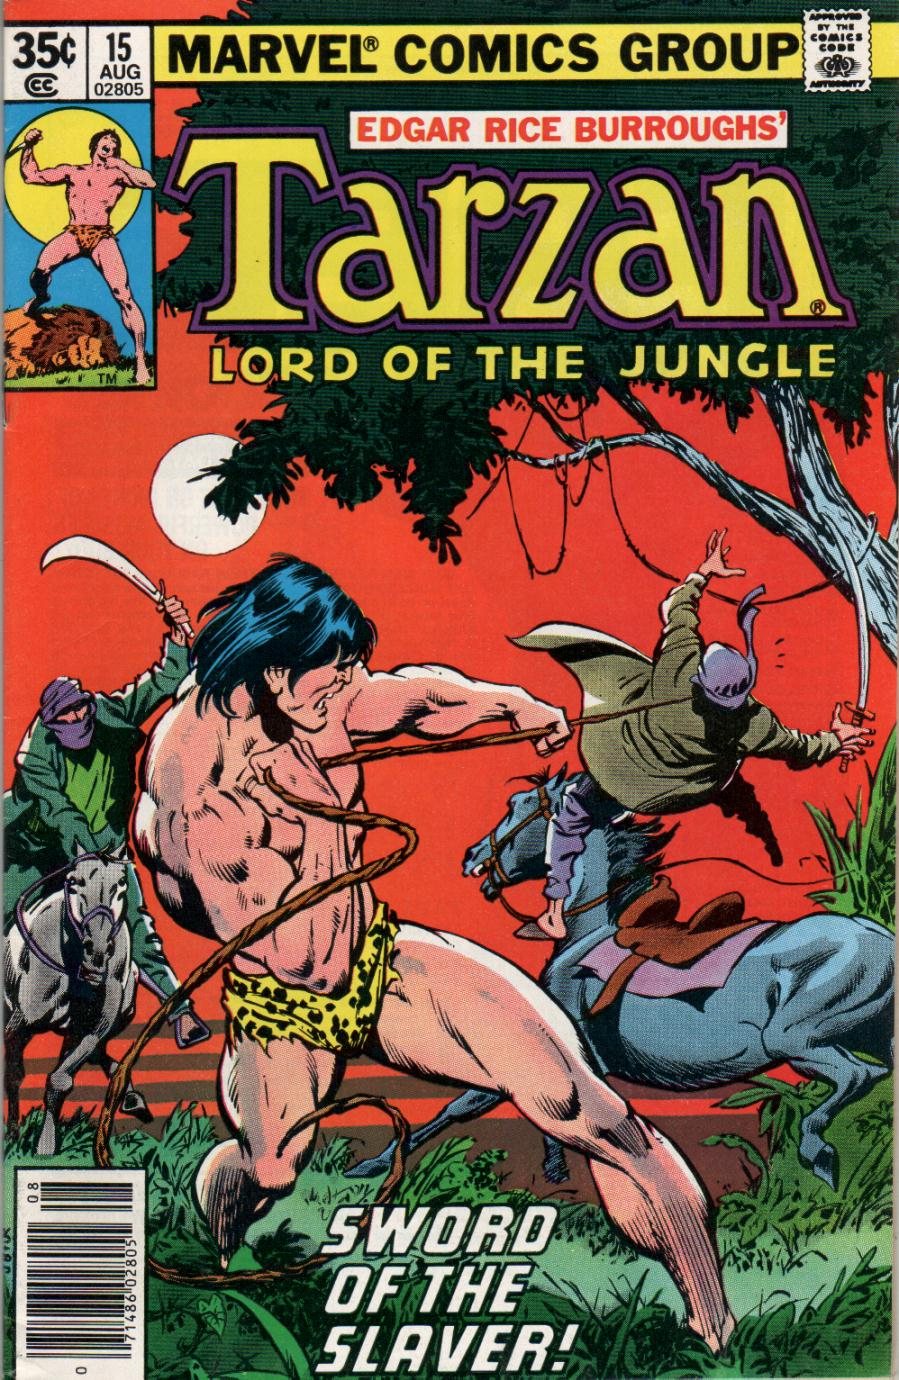 Tarzan (1977) #15, cover penciled by John Buscema and inked by Joe Rubinstein.